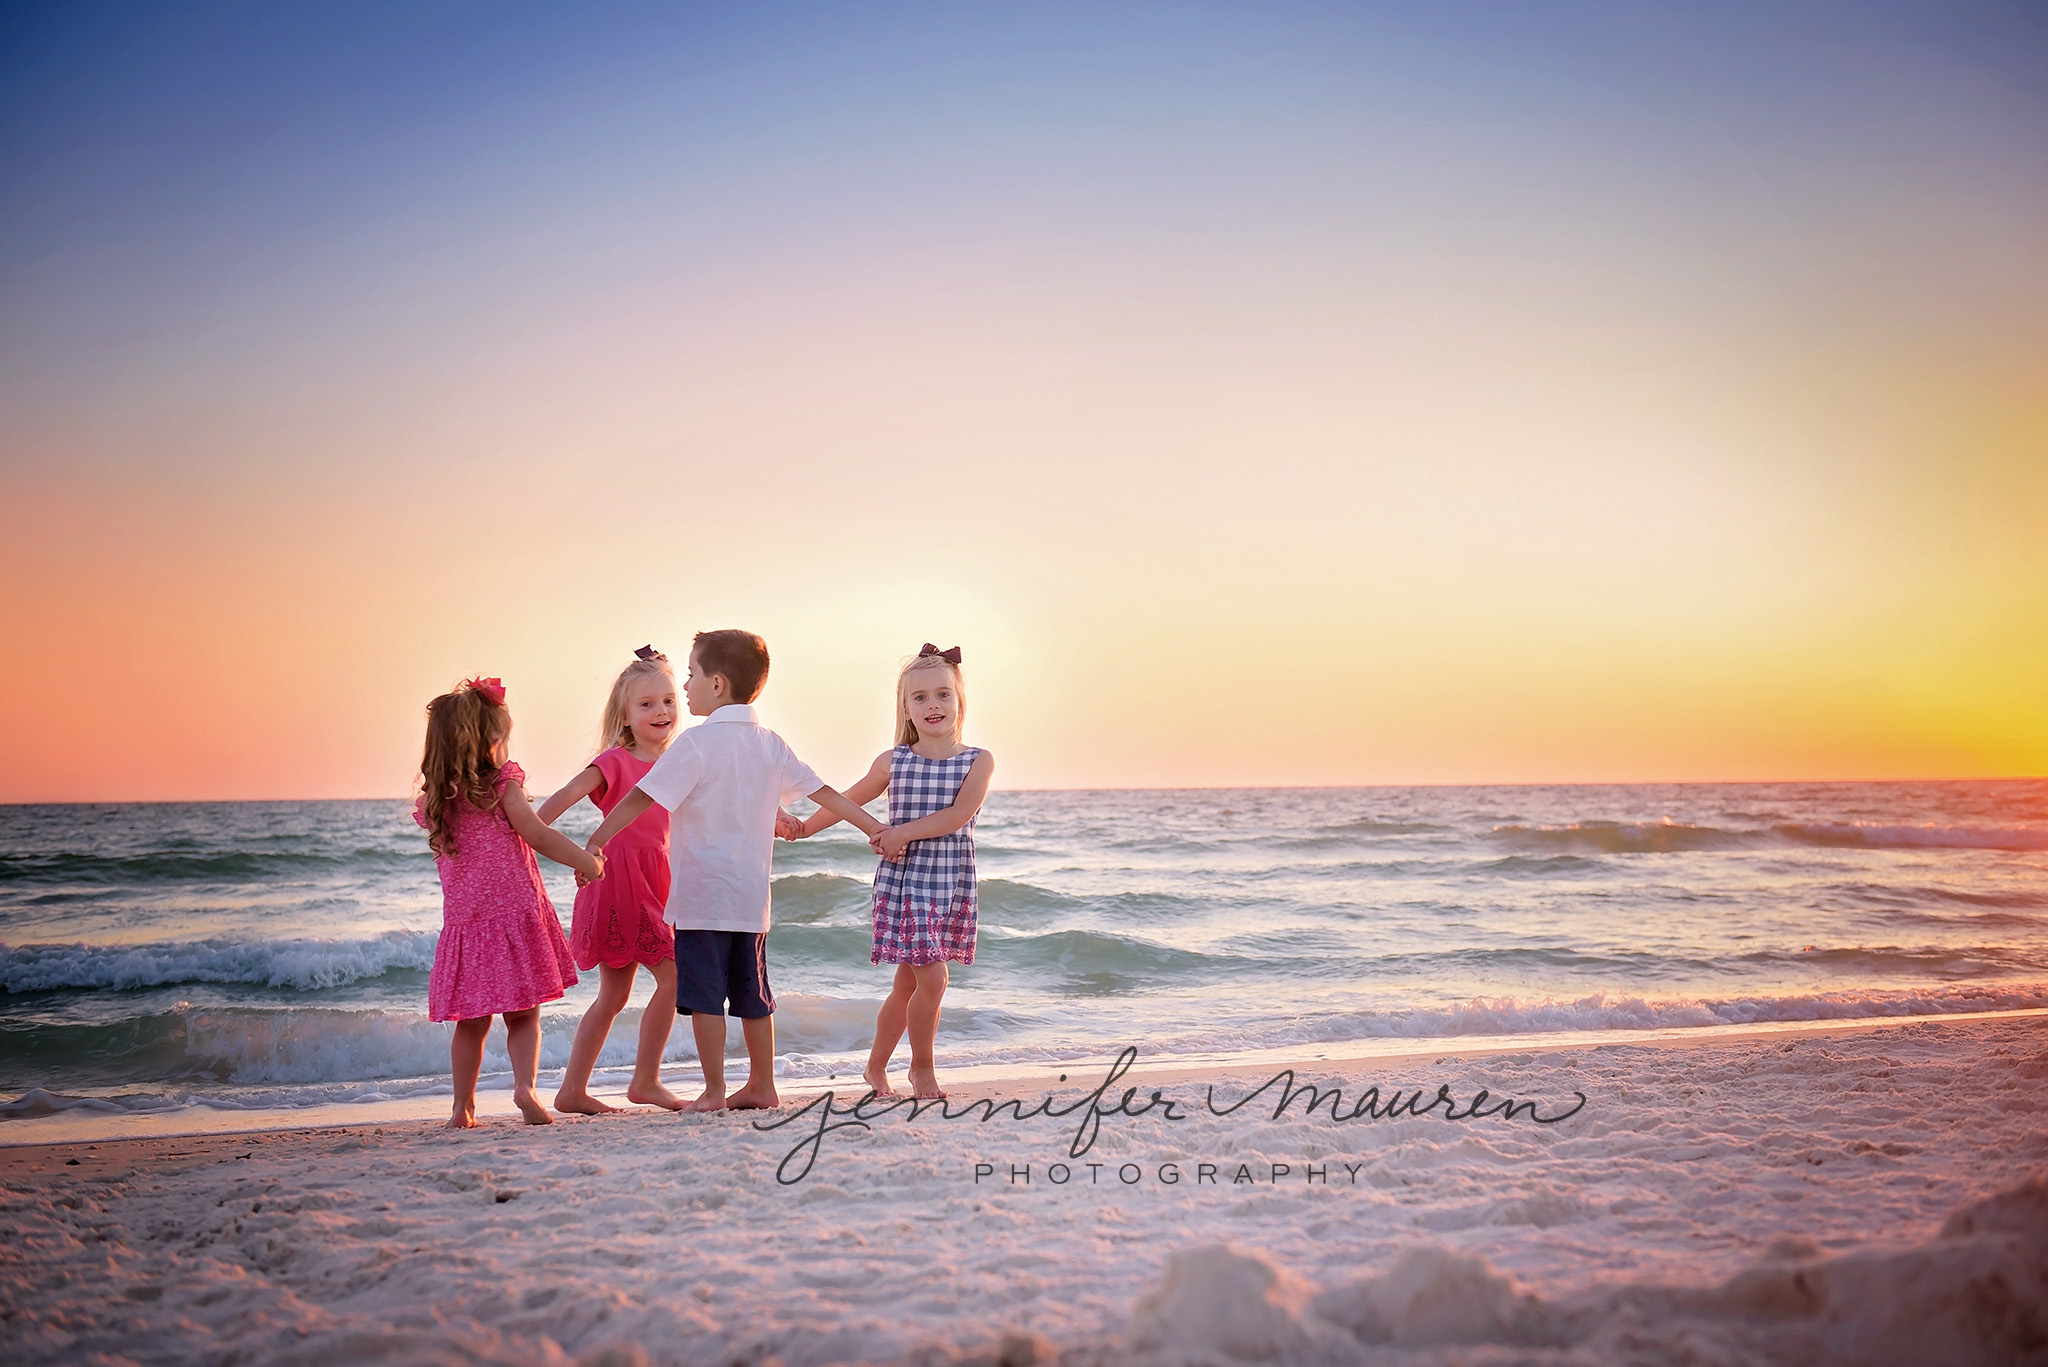 Kids playing on beach with sunset